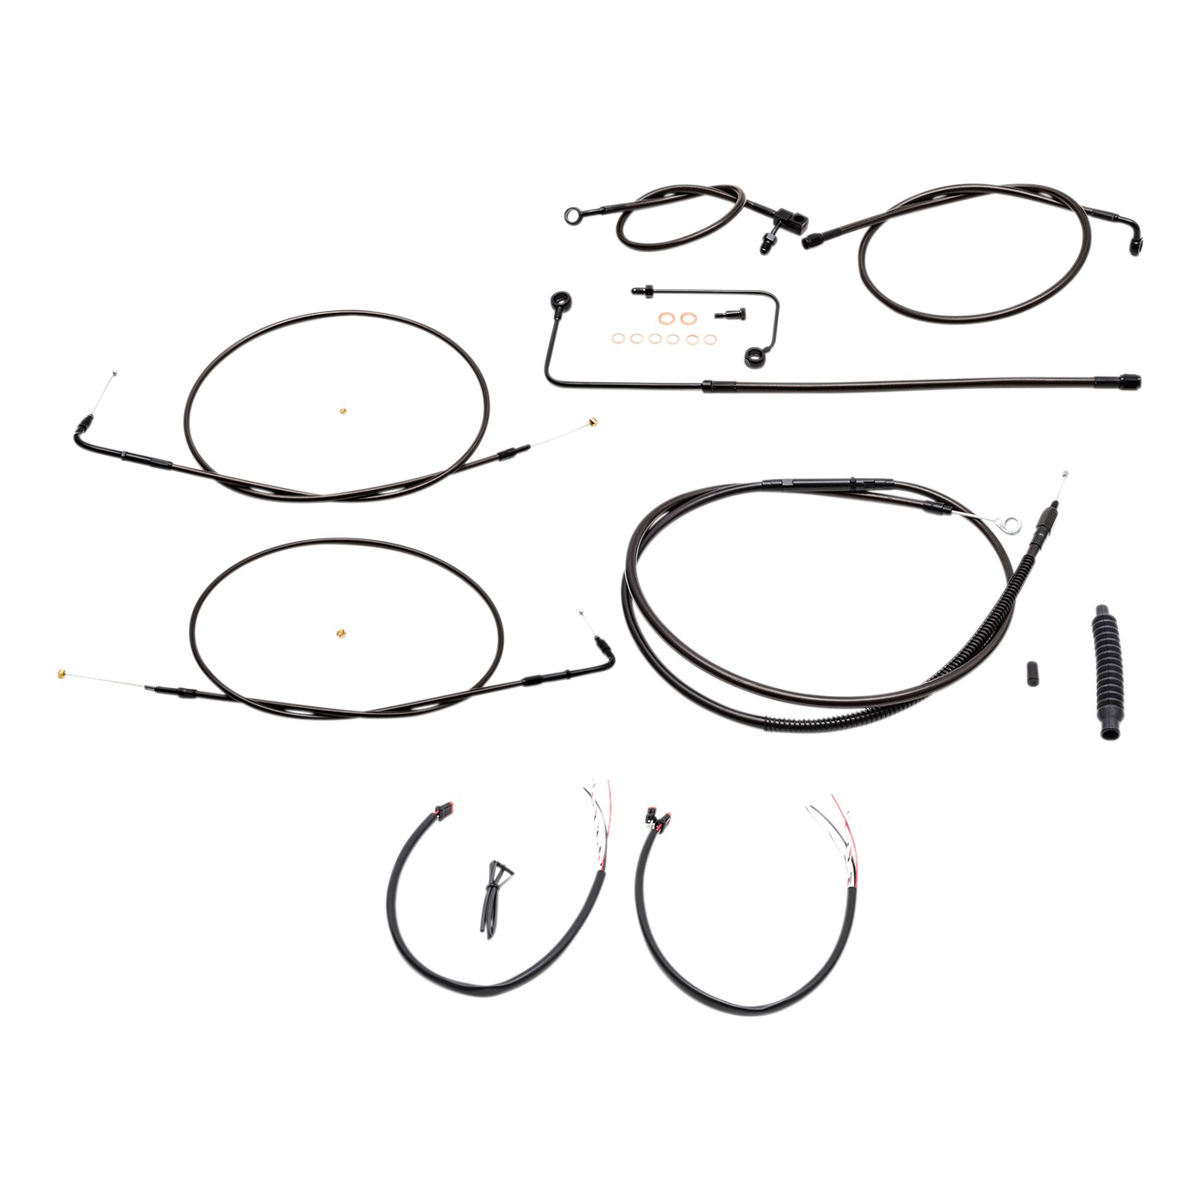 LA Choppers Midnight Complete Cable/Line/Wiring Handlebar Kit for 15″-17″ Bars on Models with ABS